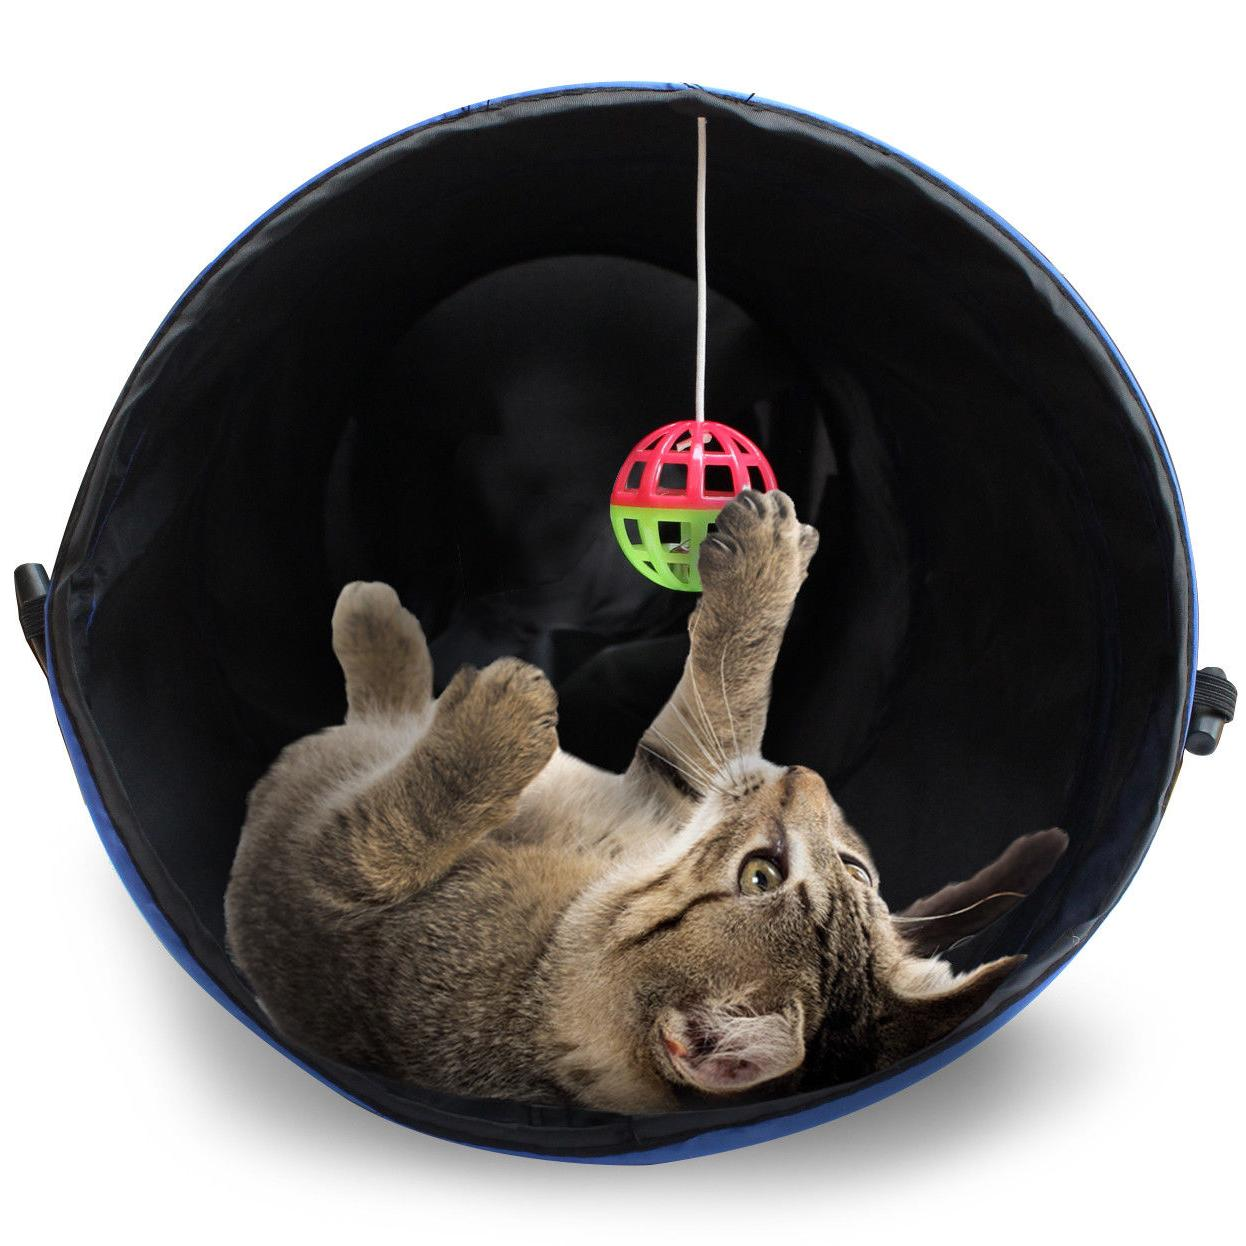 Purrfect Feline Tunnel Design, Collapsible 4-way Tunnel Toy with Crinkle